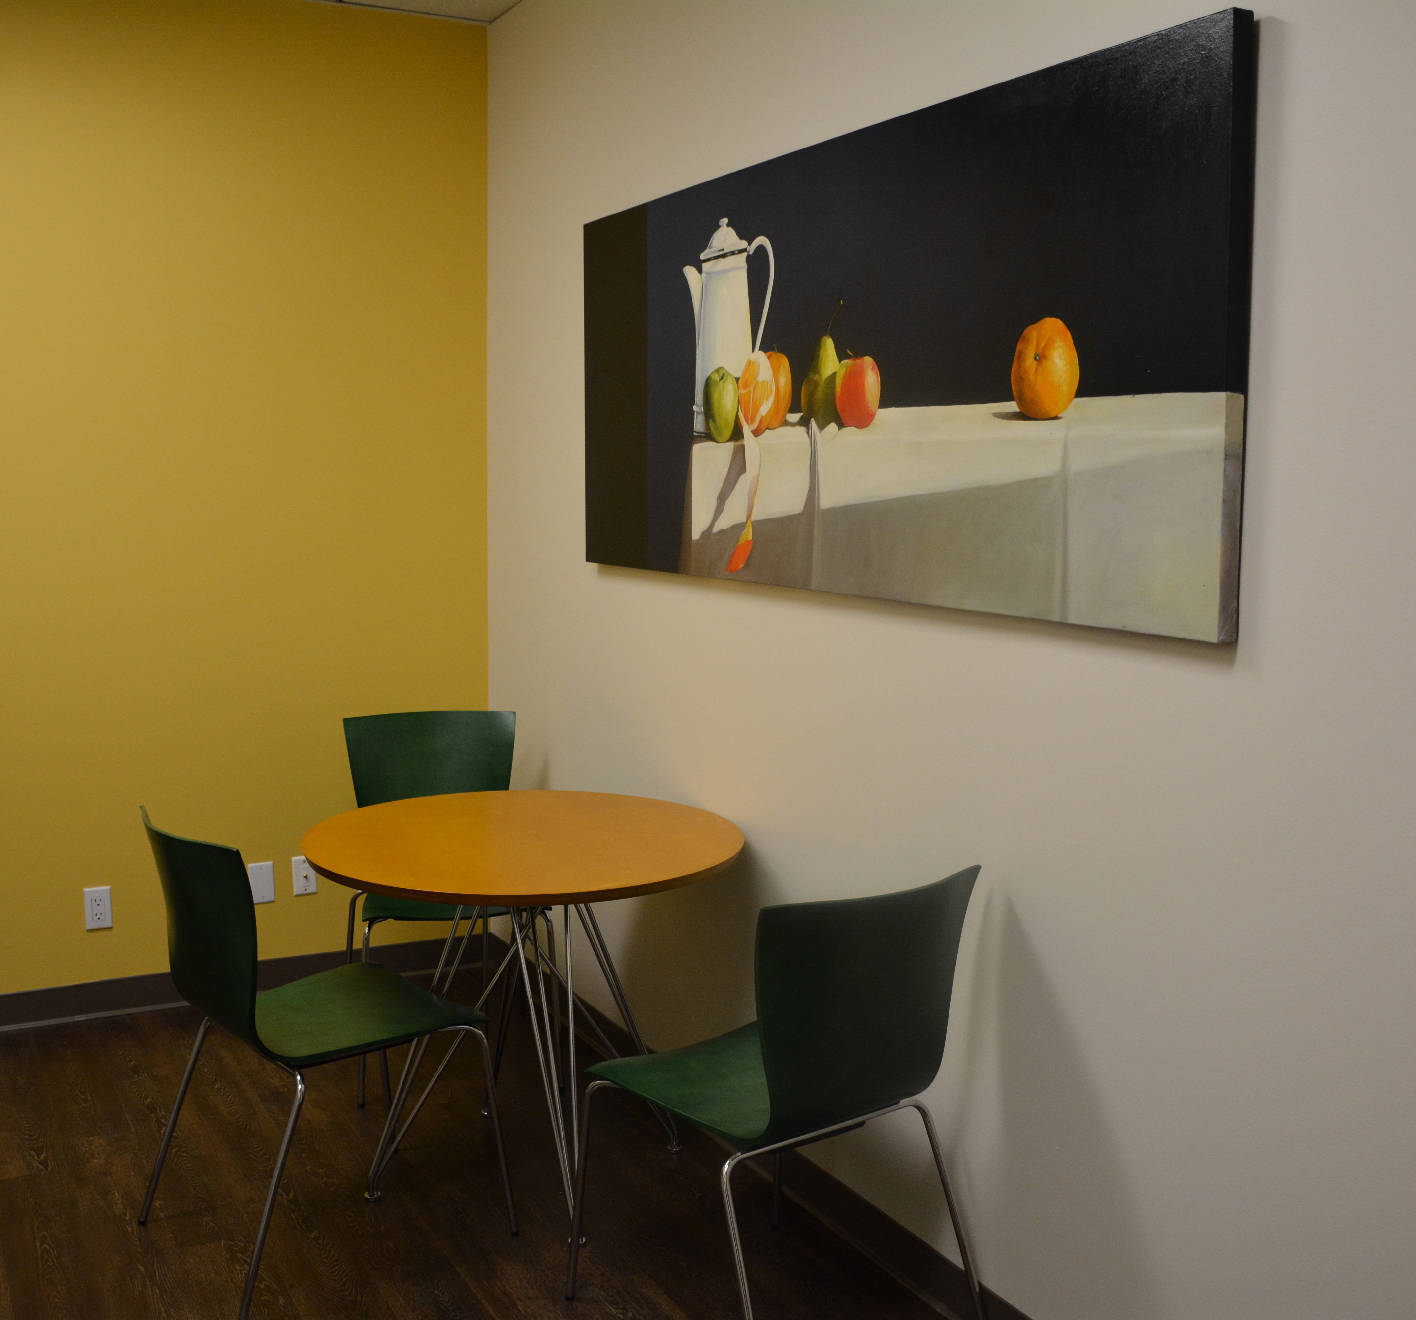 This Is A Pleasant Eating Space With A Table And 3 Chairs Designed With The  Orange And Green Of Art In Mind.